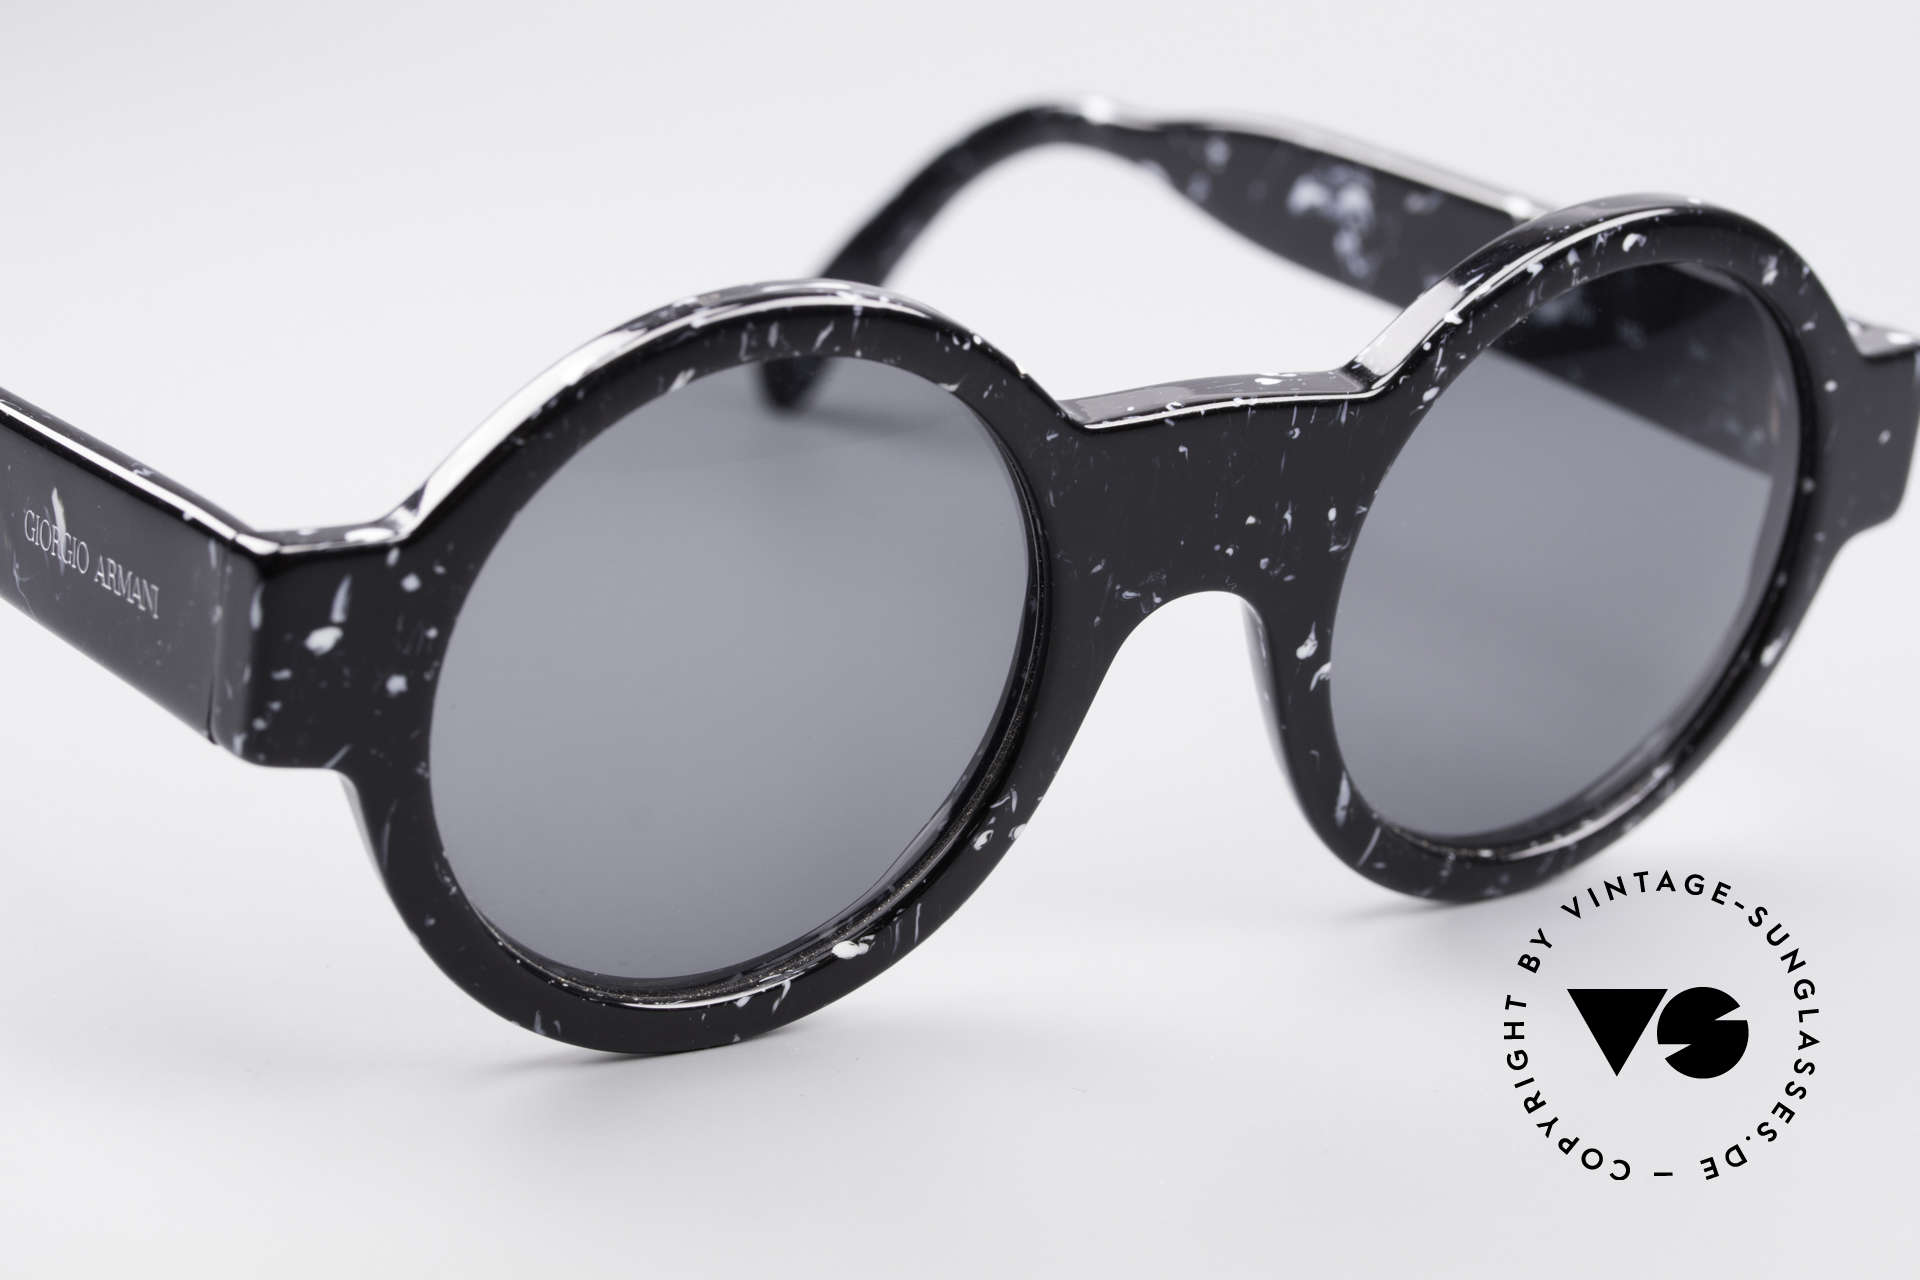 Giorgio Armani 903 Round Designer Sunglasses, NO RETRO specs, but a unique old ORIGINAL!, Made for Men and Women